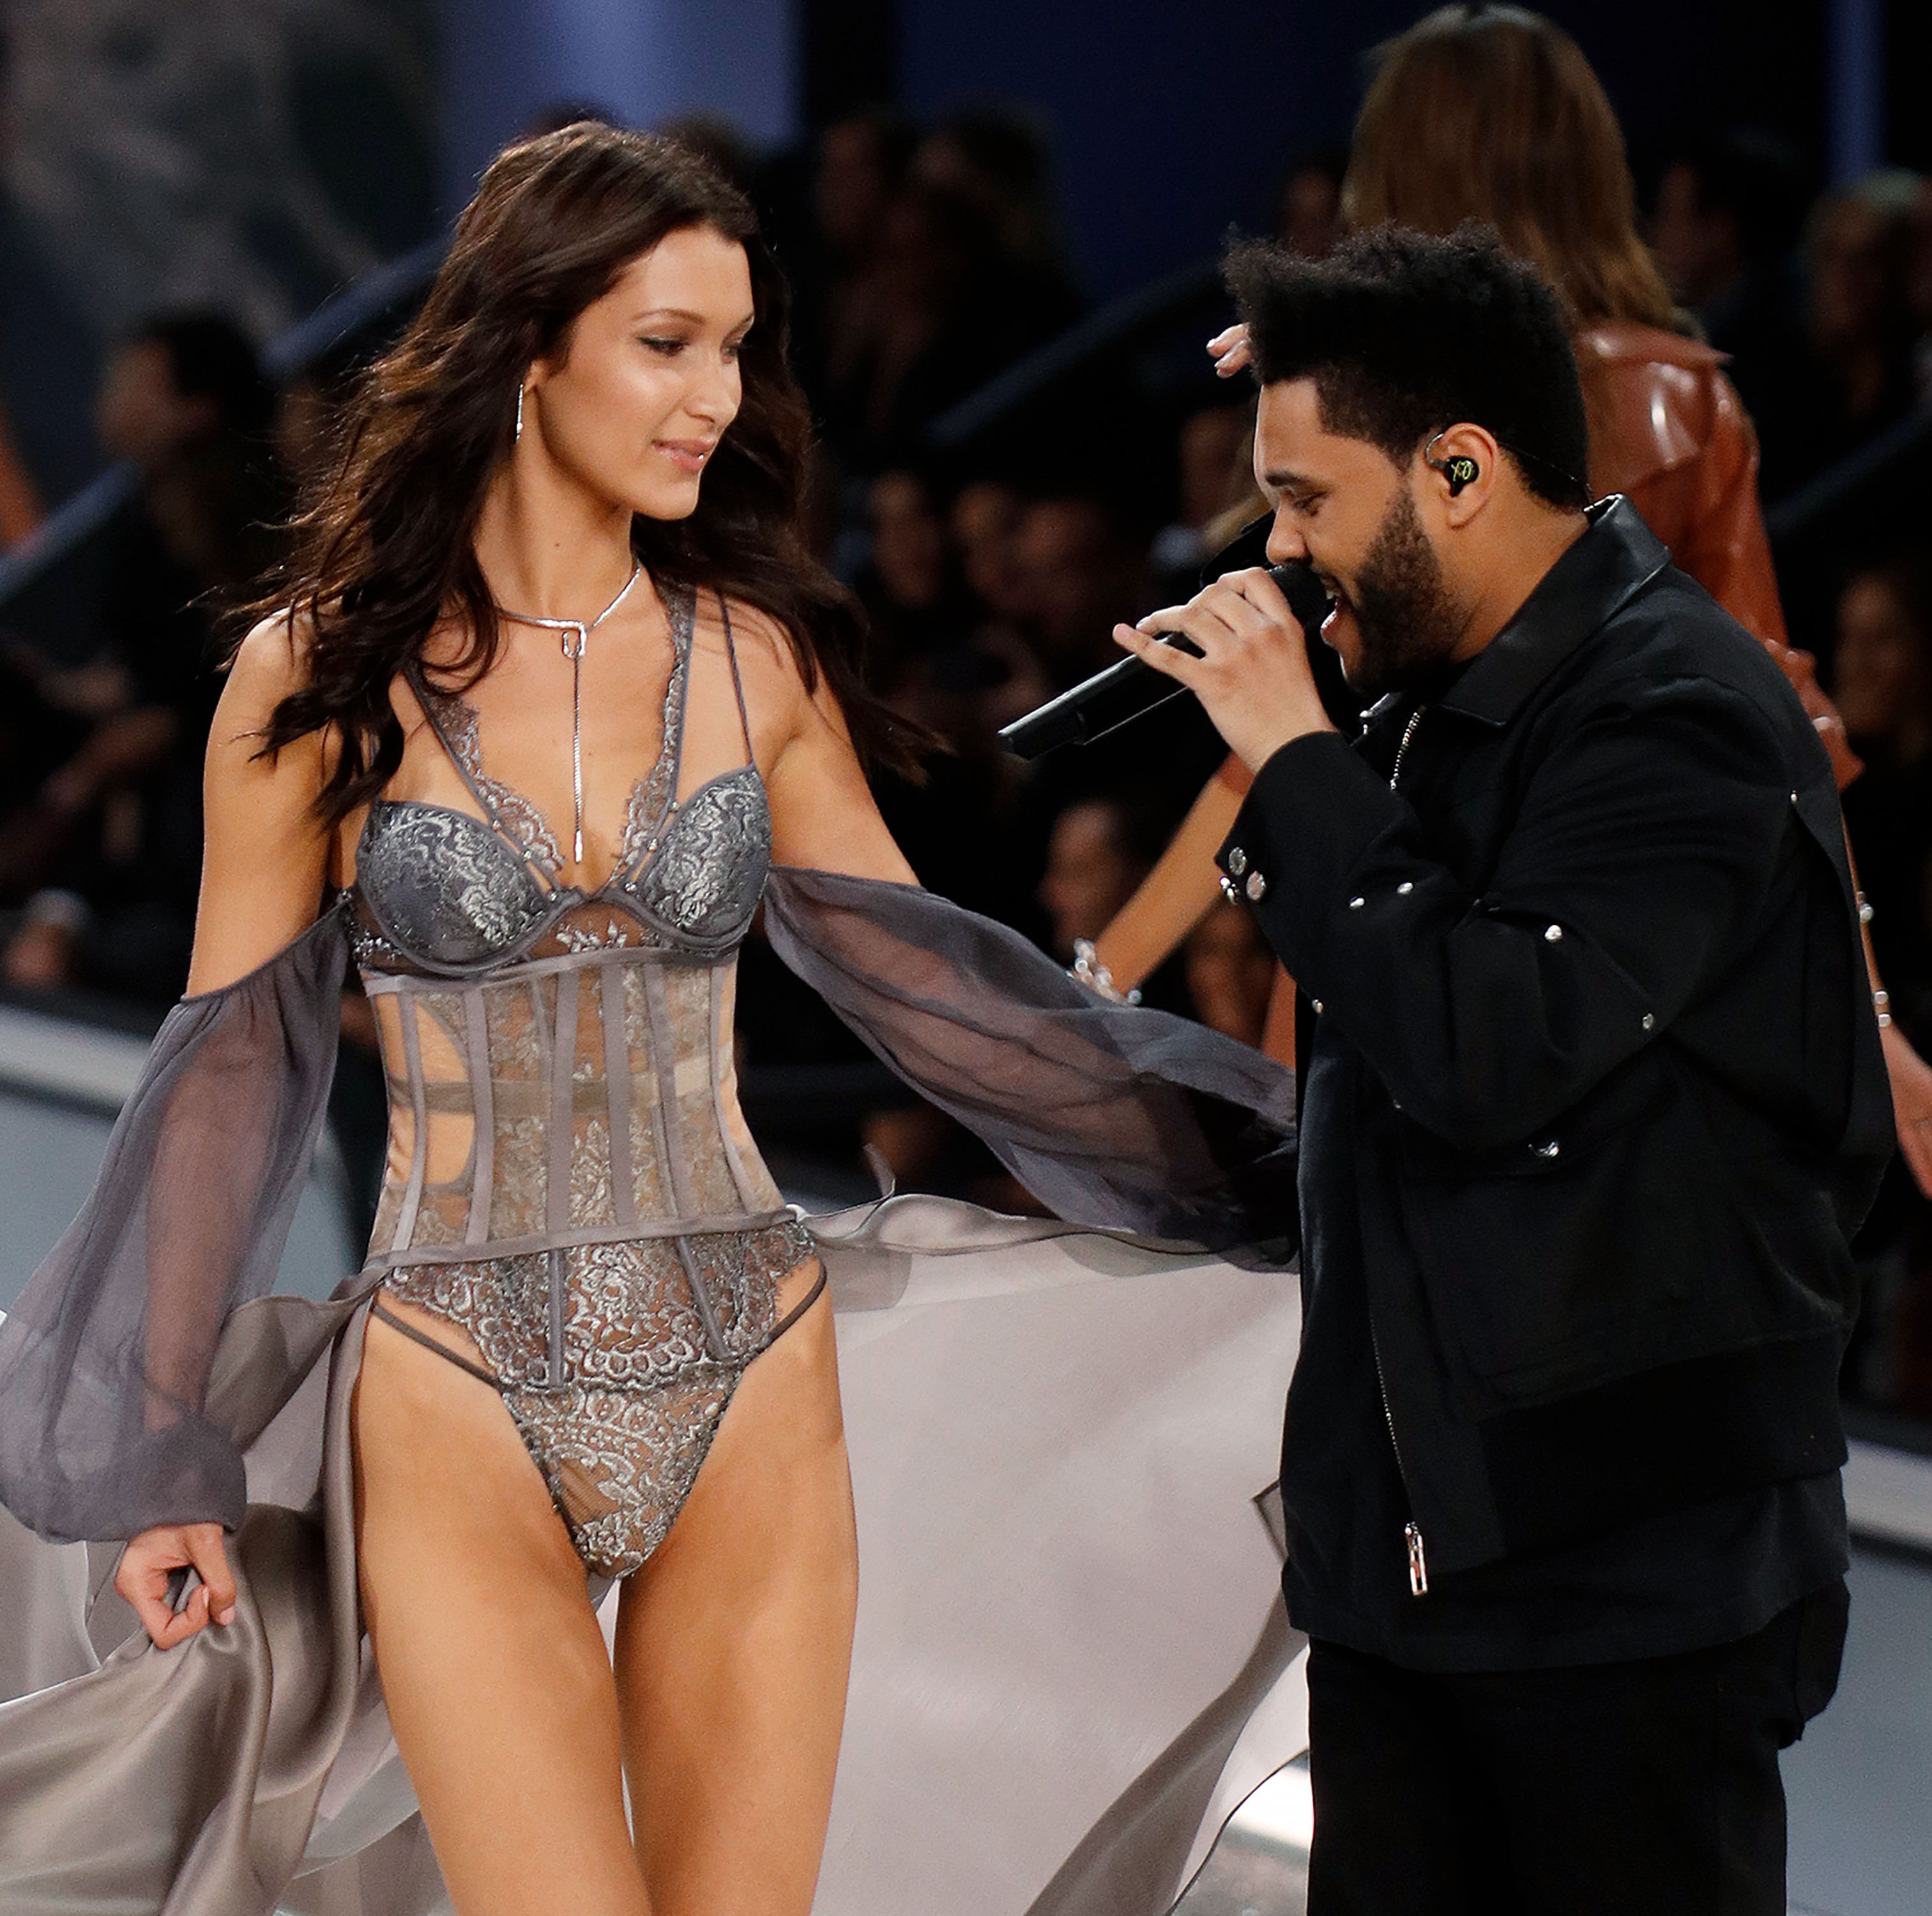 Bella Hadid and The Weeknd share a brief moment on the runway at the Victoria's Secret Fashion Show. (Photo credit: Splash News)